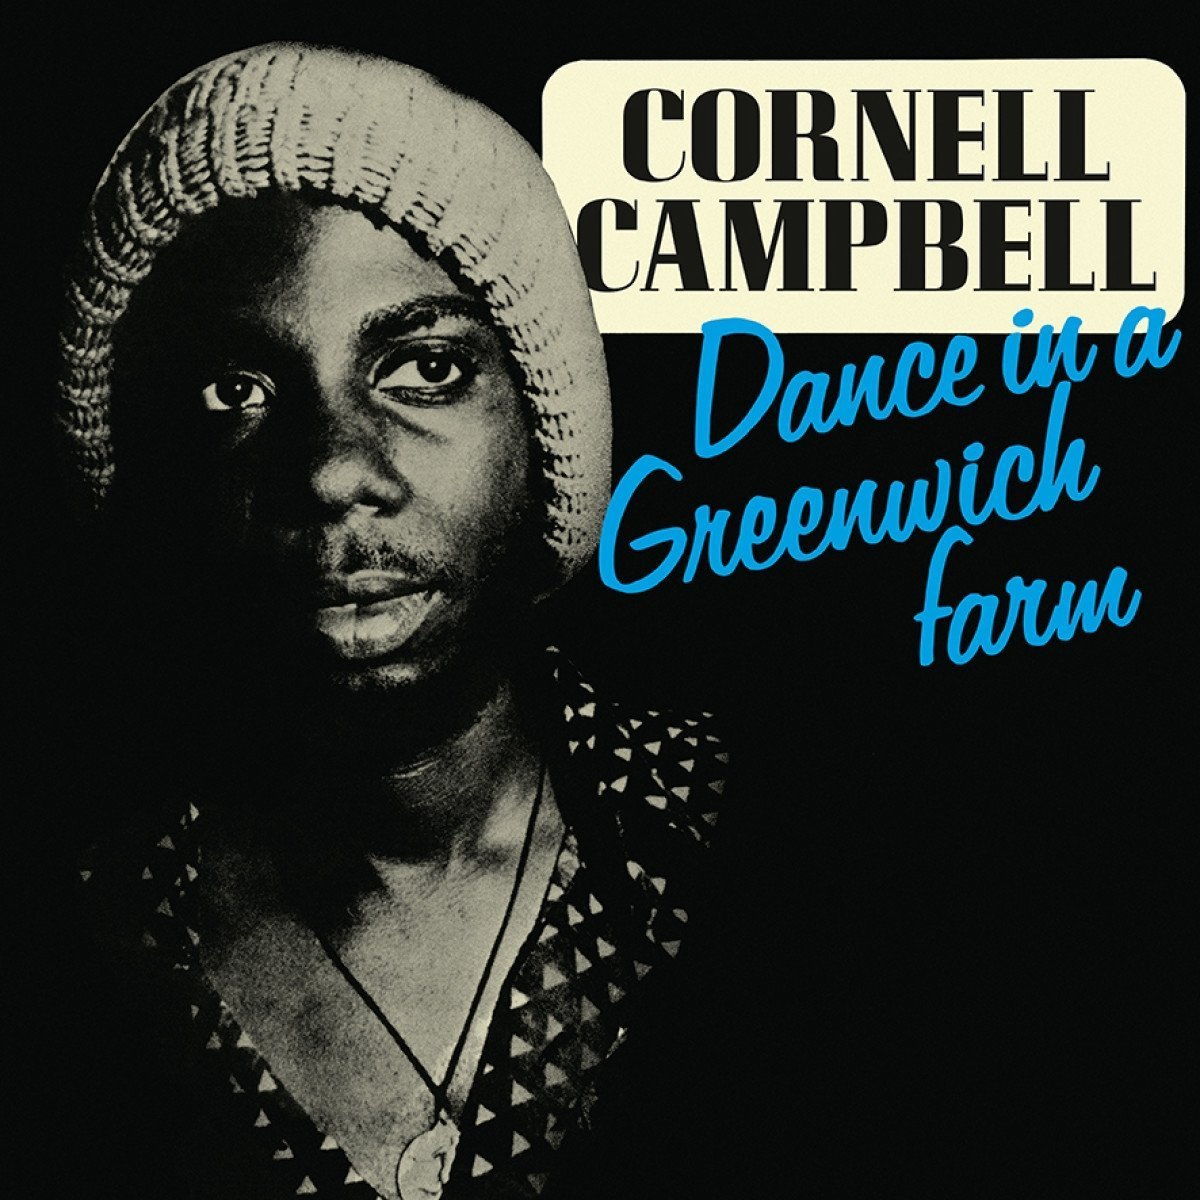 Dance In A Greenwich Farm (LP) by Cornell Campbell image